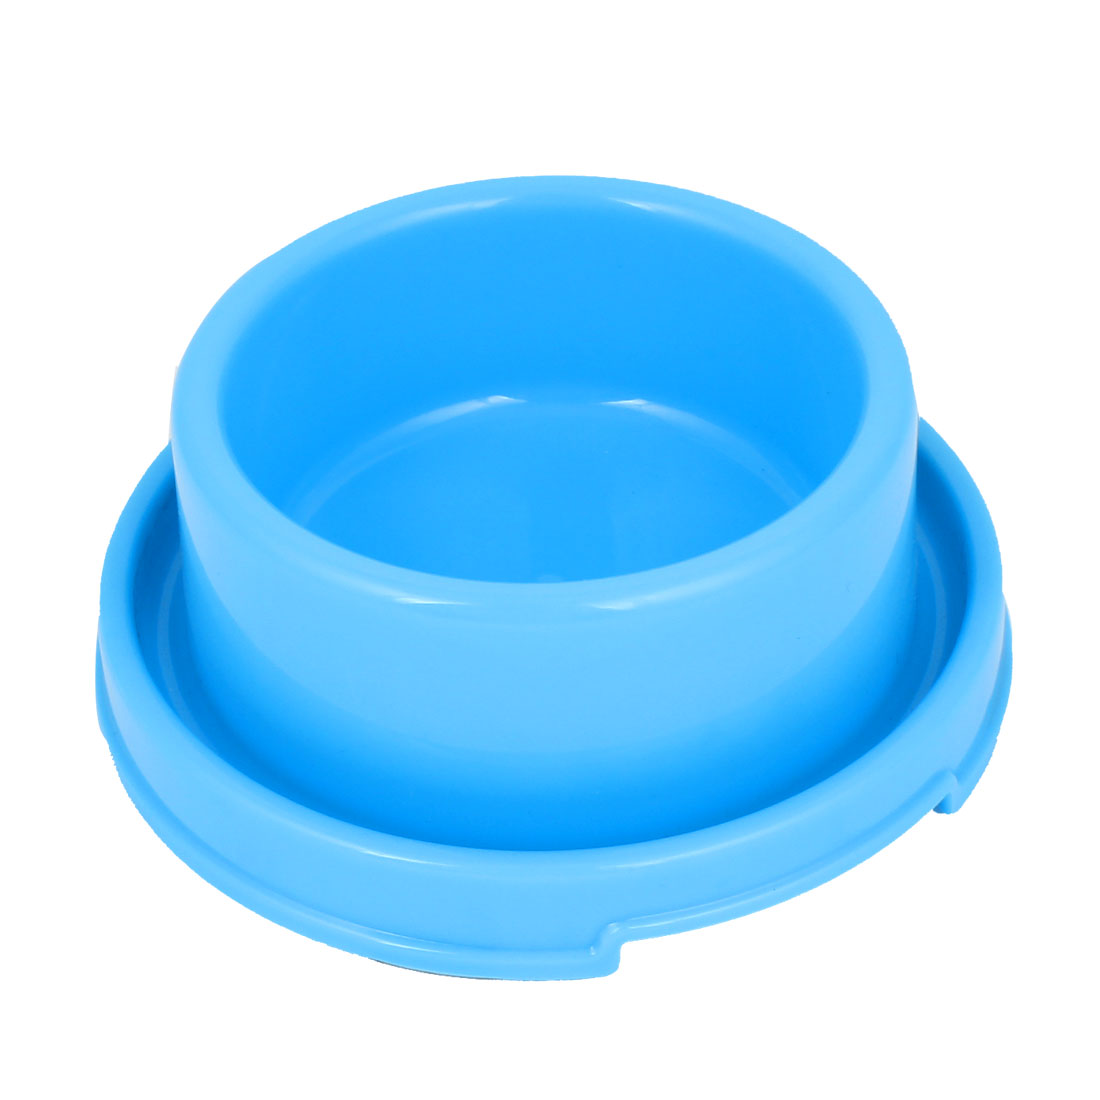 18cm Diameter 7cm Height Doggie Dog Pet Plastic Eat Food Water Bowl Dish Blue